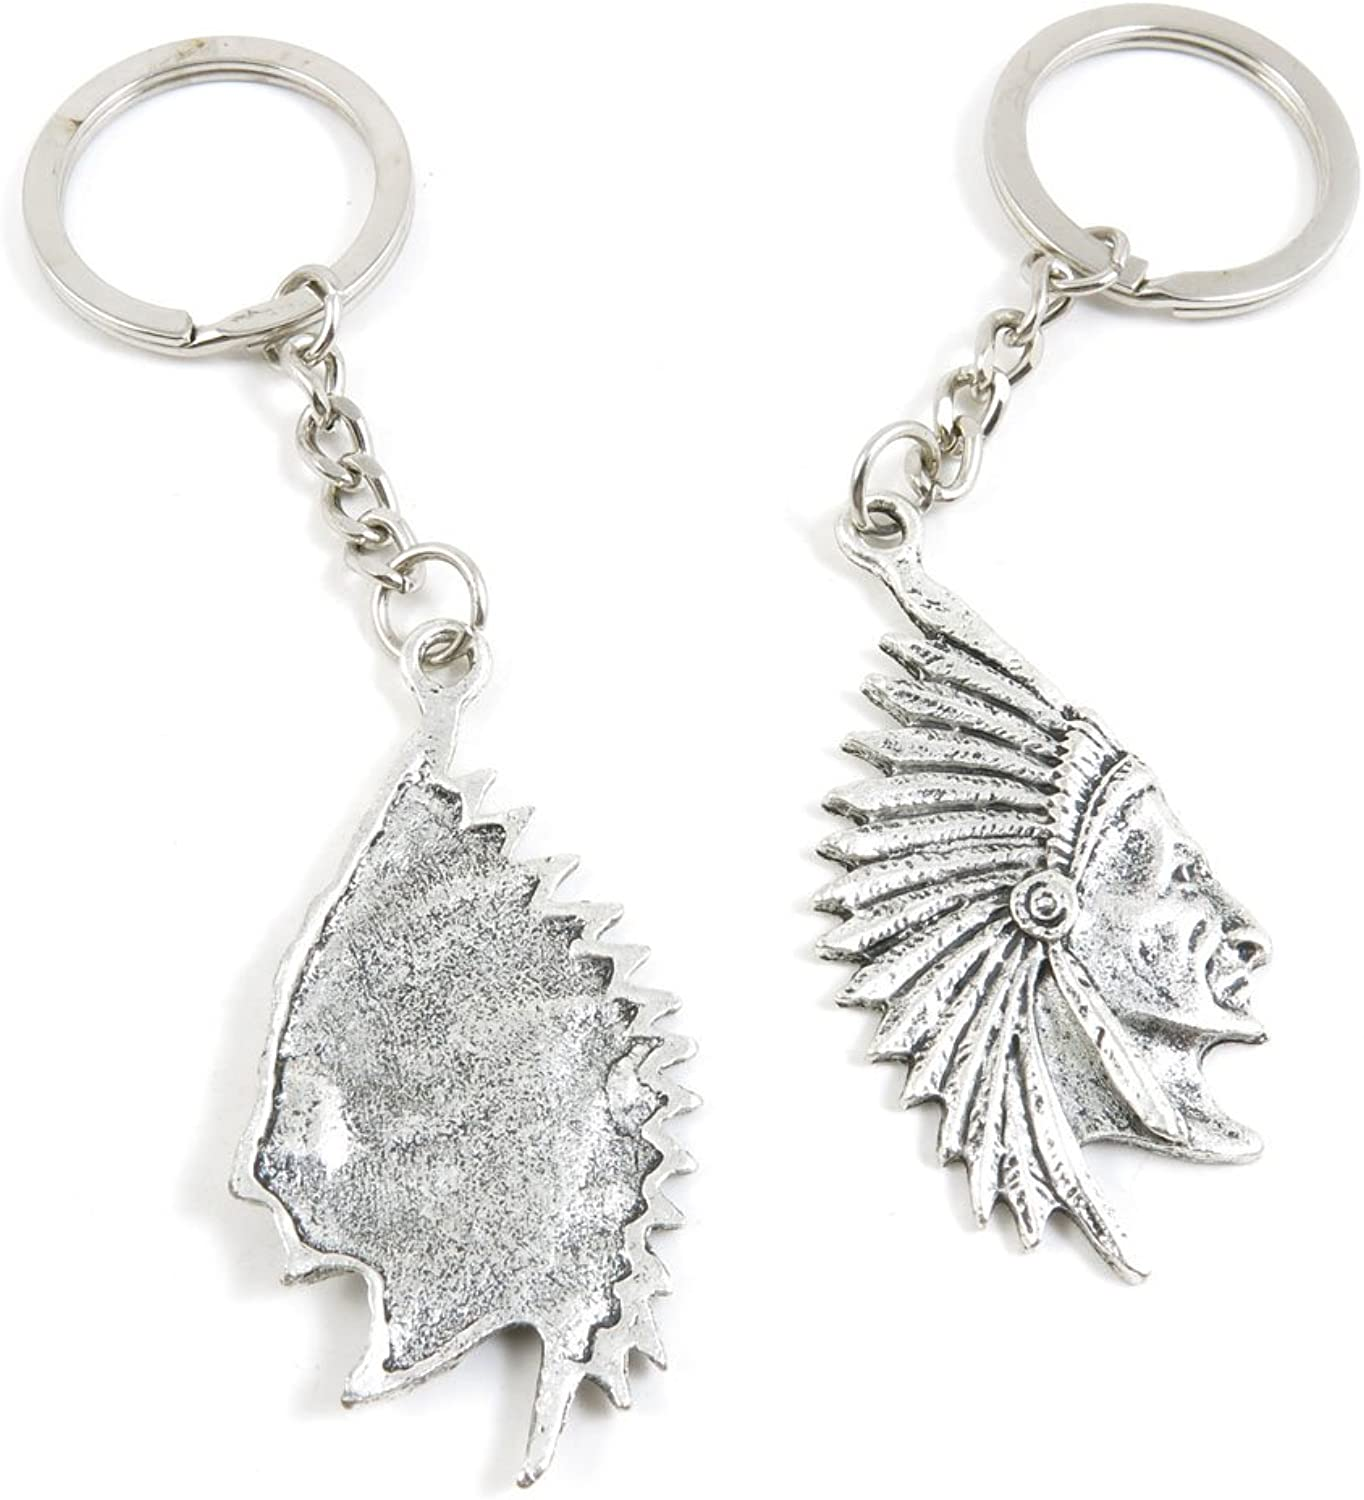 110 Pieces Fashion Jewelry Keyring Keychain Door Car Key Tag Ring Chain Supplier Supply Wholesale Bulk Lots F3BY2 Indian Tribe Avatar